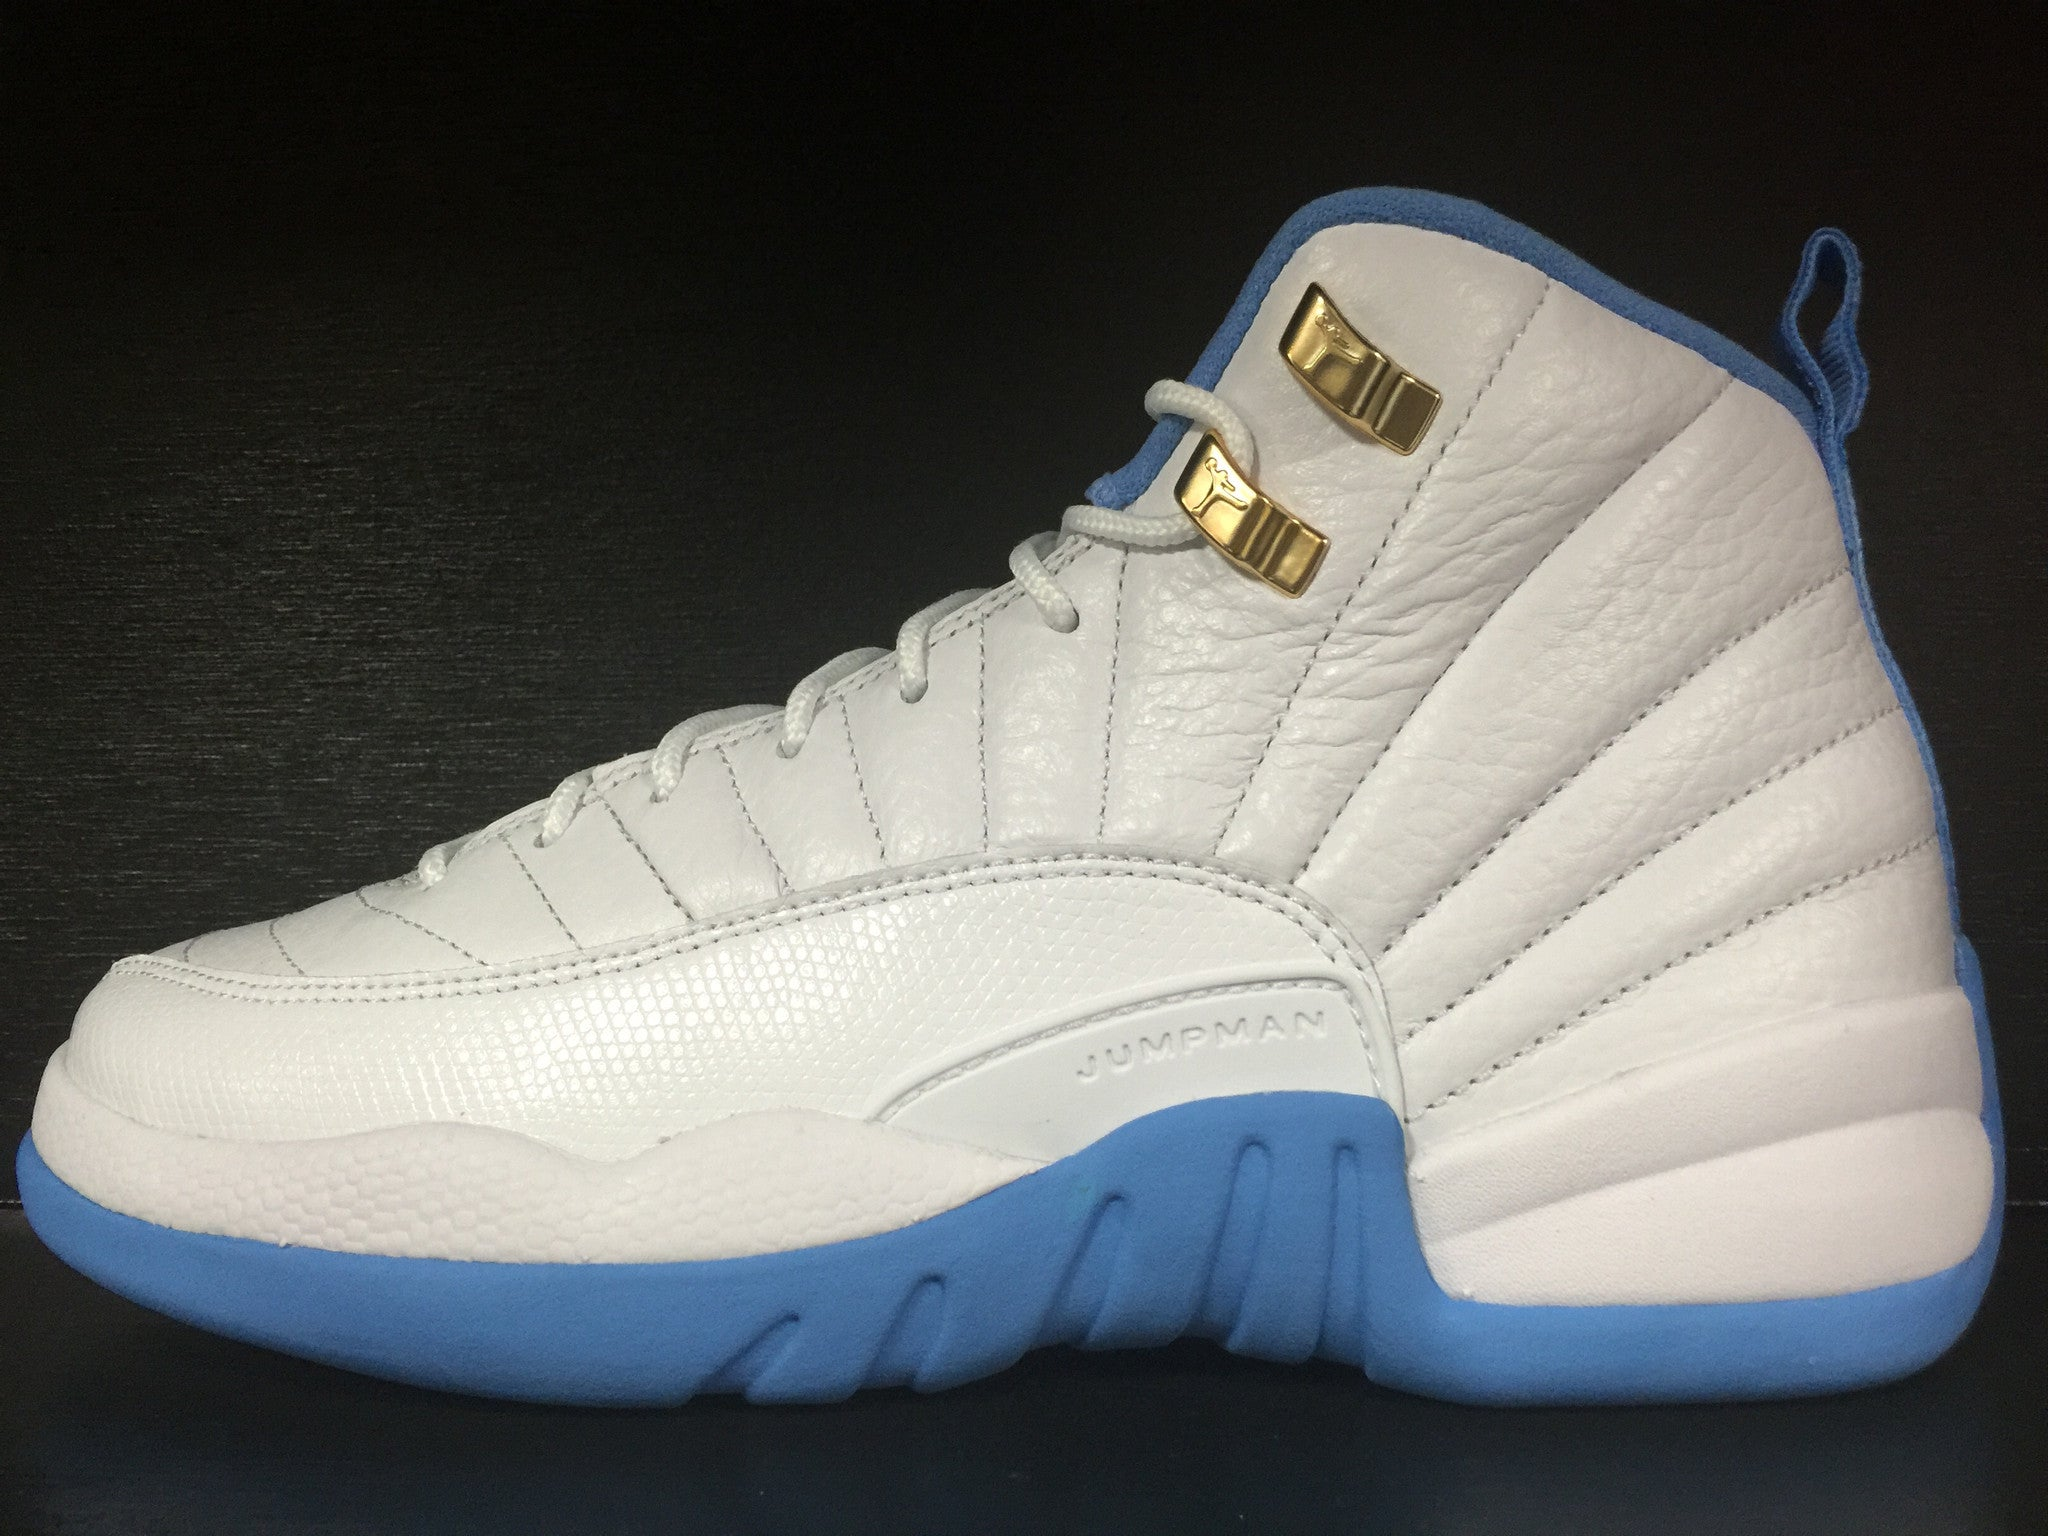 Air Jordan 12 Retro 'University Blue' 'Melo' GS